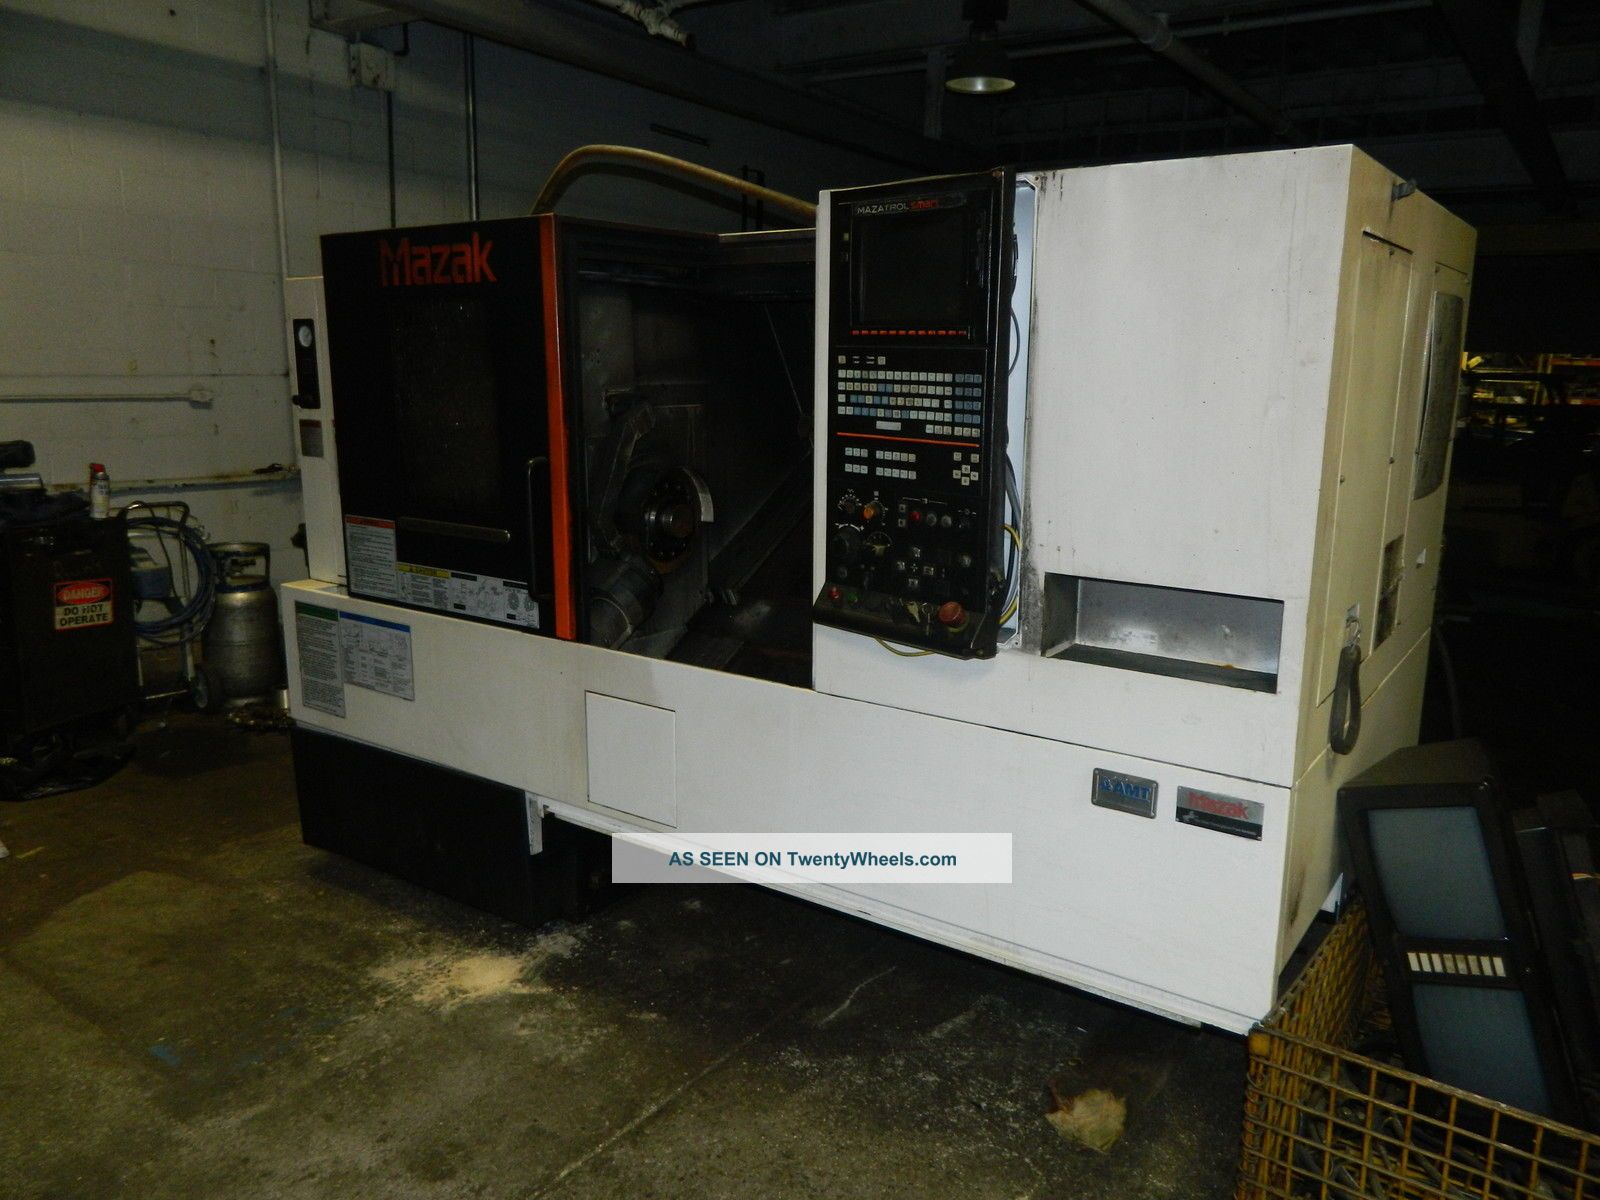 Mazak Quick Turn Smart 250 Cnc Turning Center,  7/2014, Metalworking Lathes photo